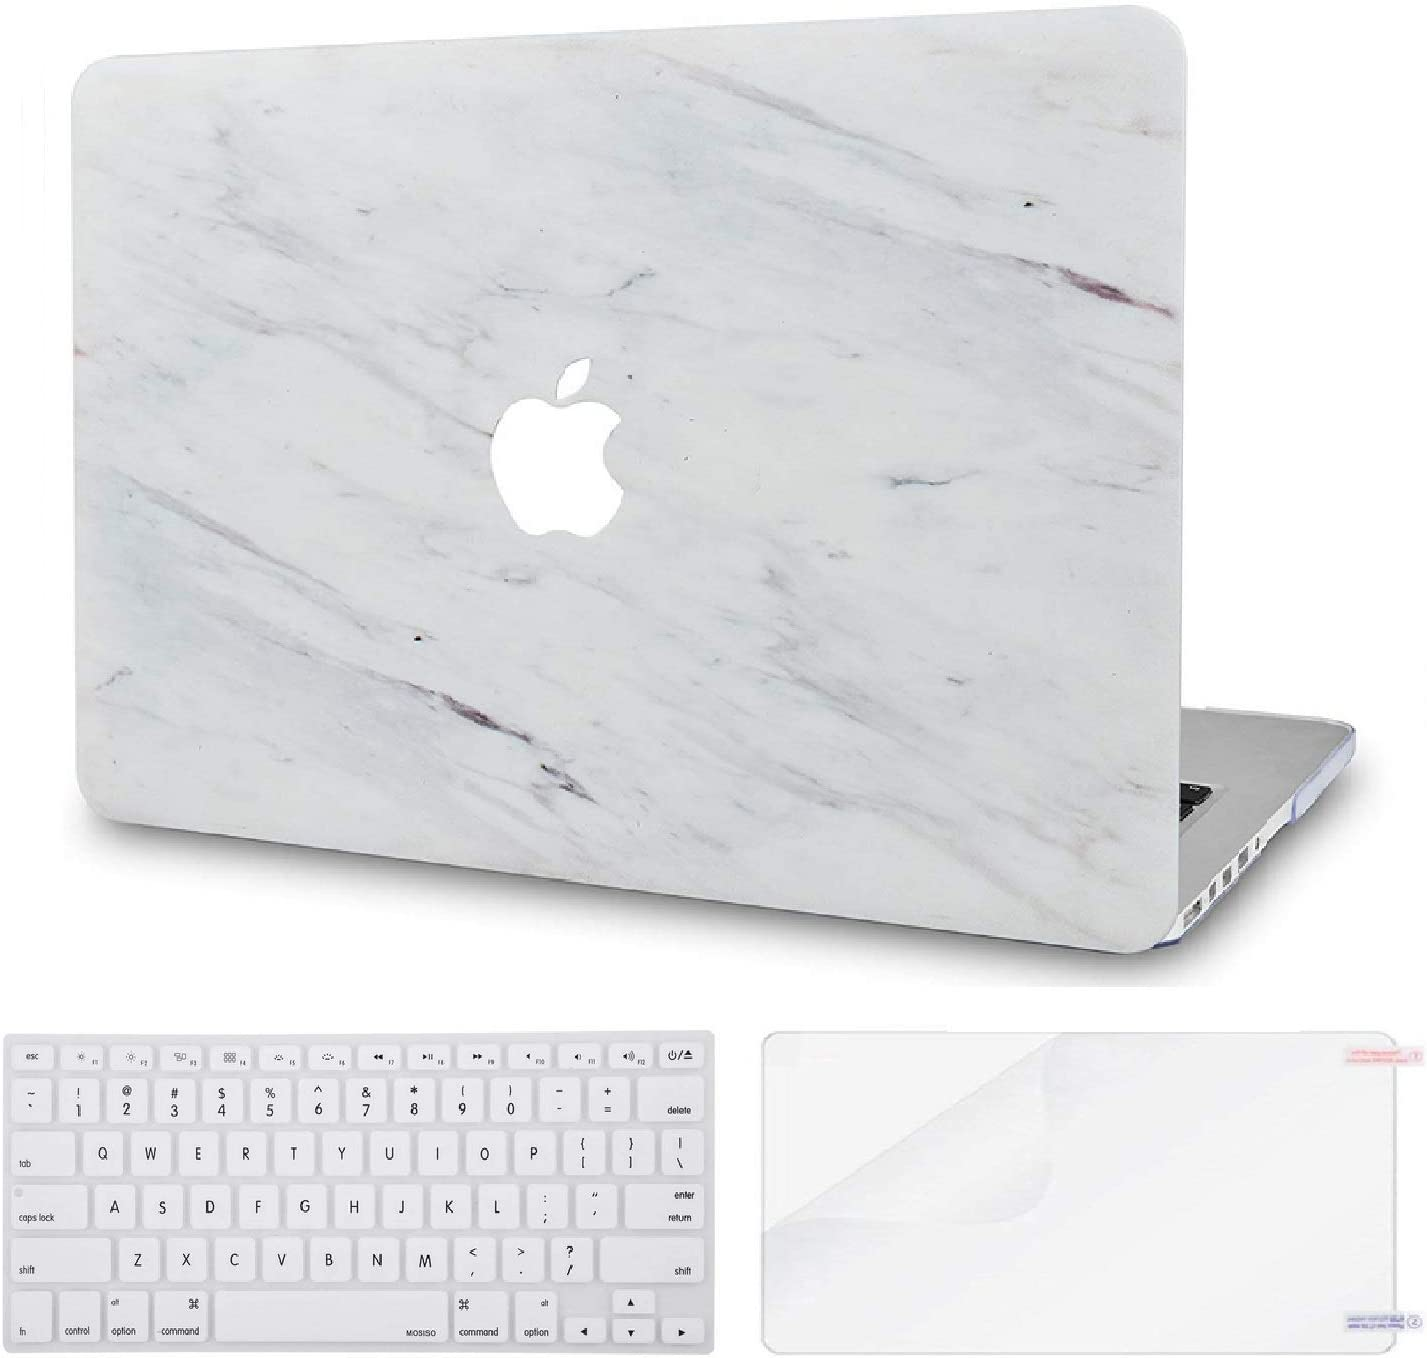 "LuvCase 3 in 1 Laptop Case for MacBook Pro 13"" (2020/2019/2018/2017/2016) w/wo Touch Bar A2159/A1989/A1706/A1708 Hard Shell Cover, Keyboard Cover & Screen Protector (Silk White Marble)"